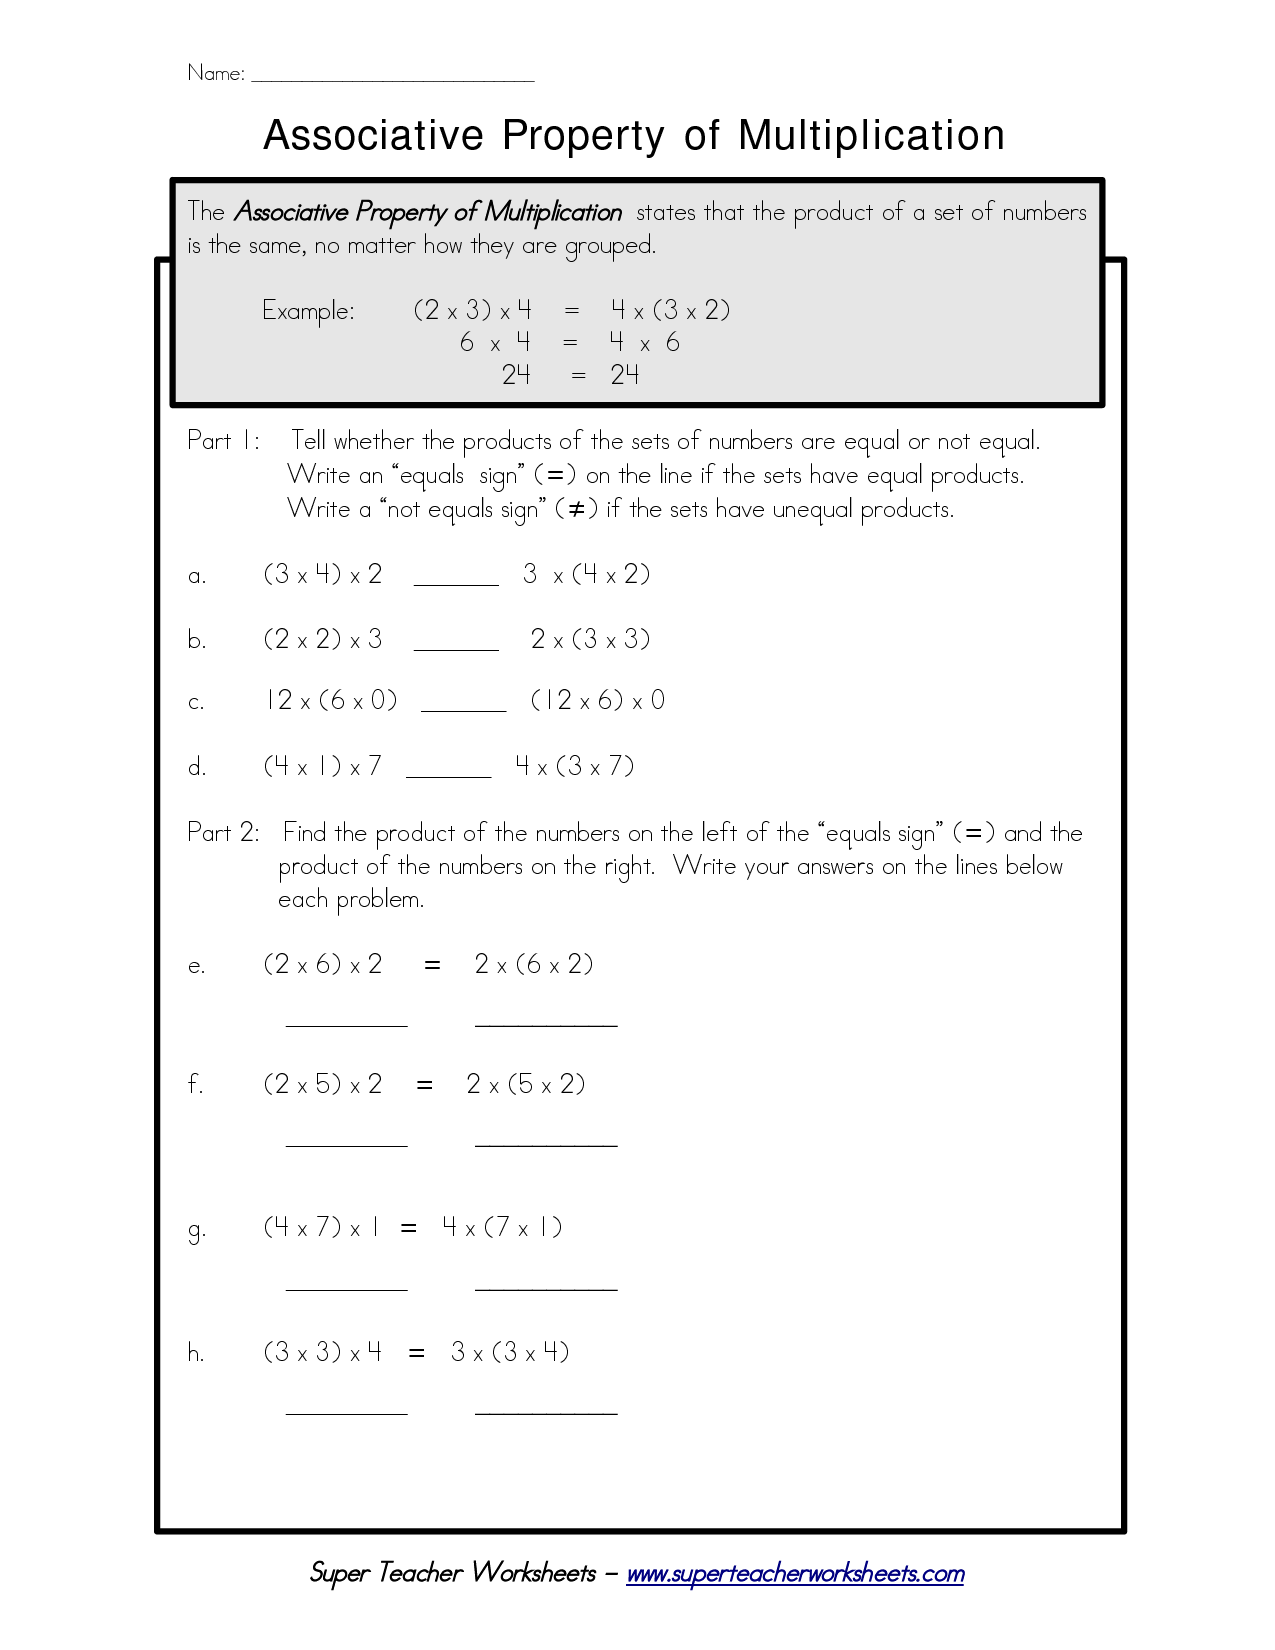 Distributive Property Of Multiplication Worksheet Answers